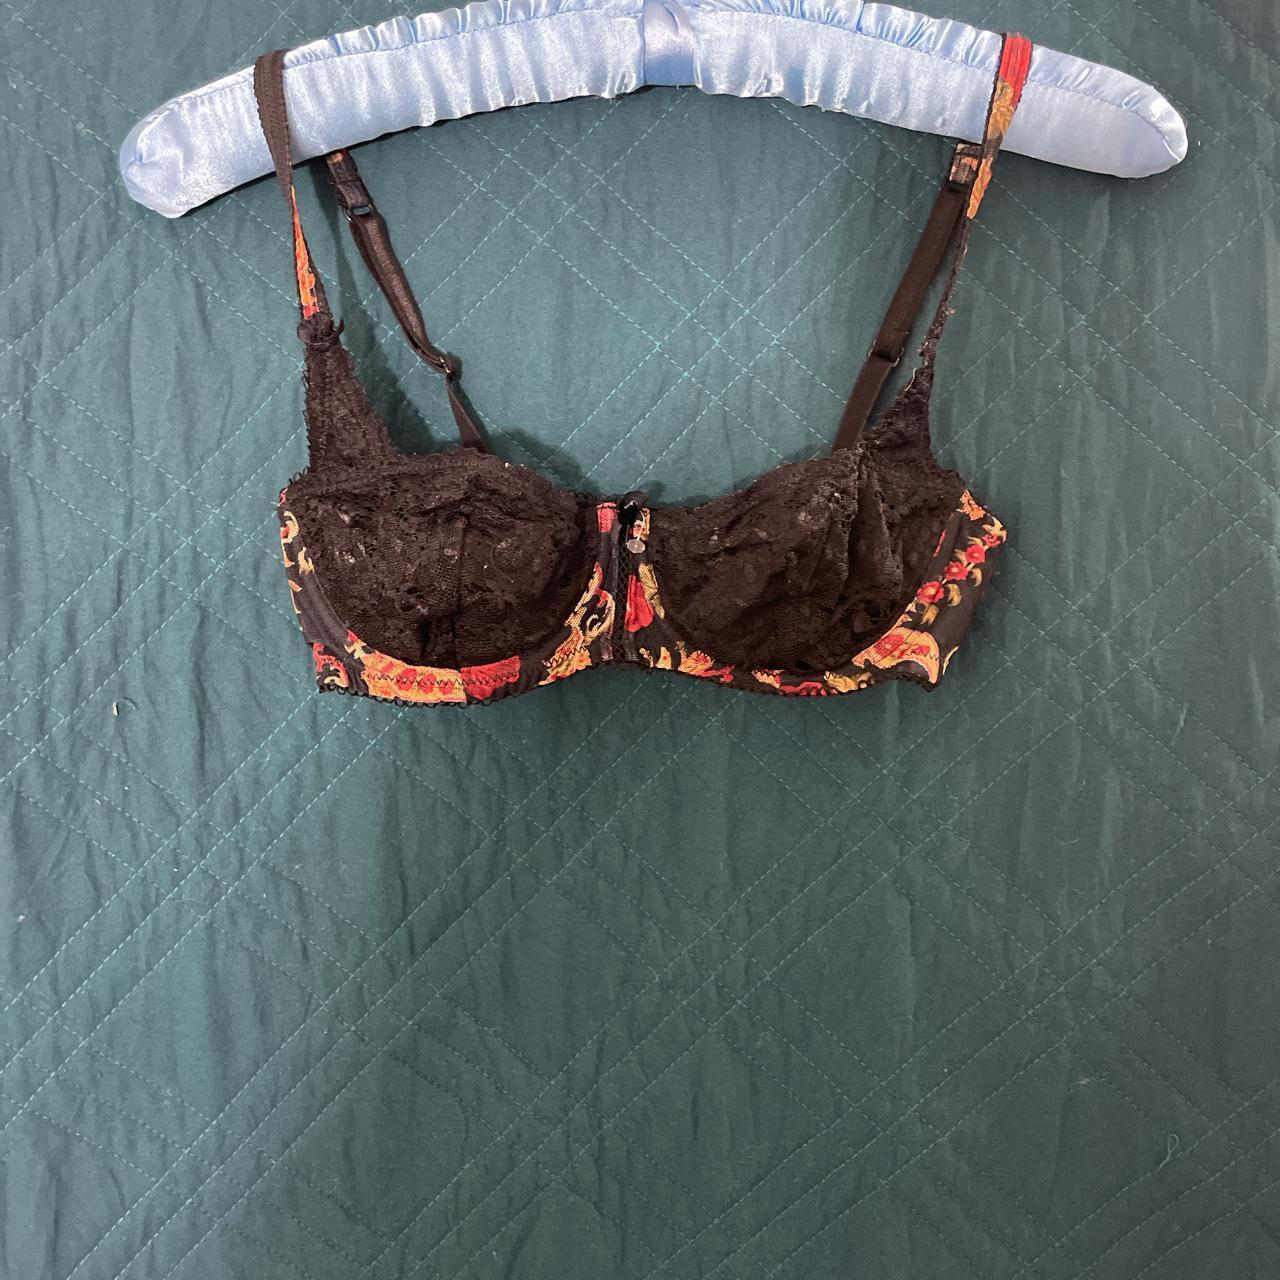 Product Image 1 - Cute black lacy bra with